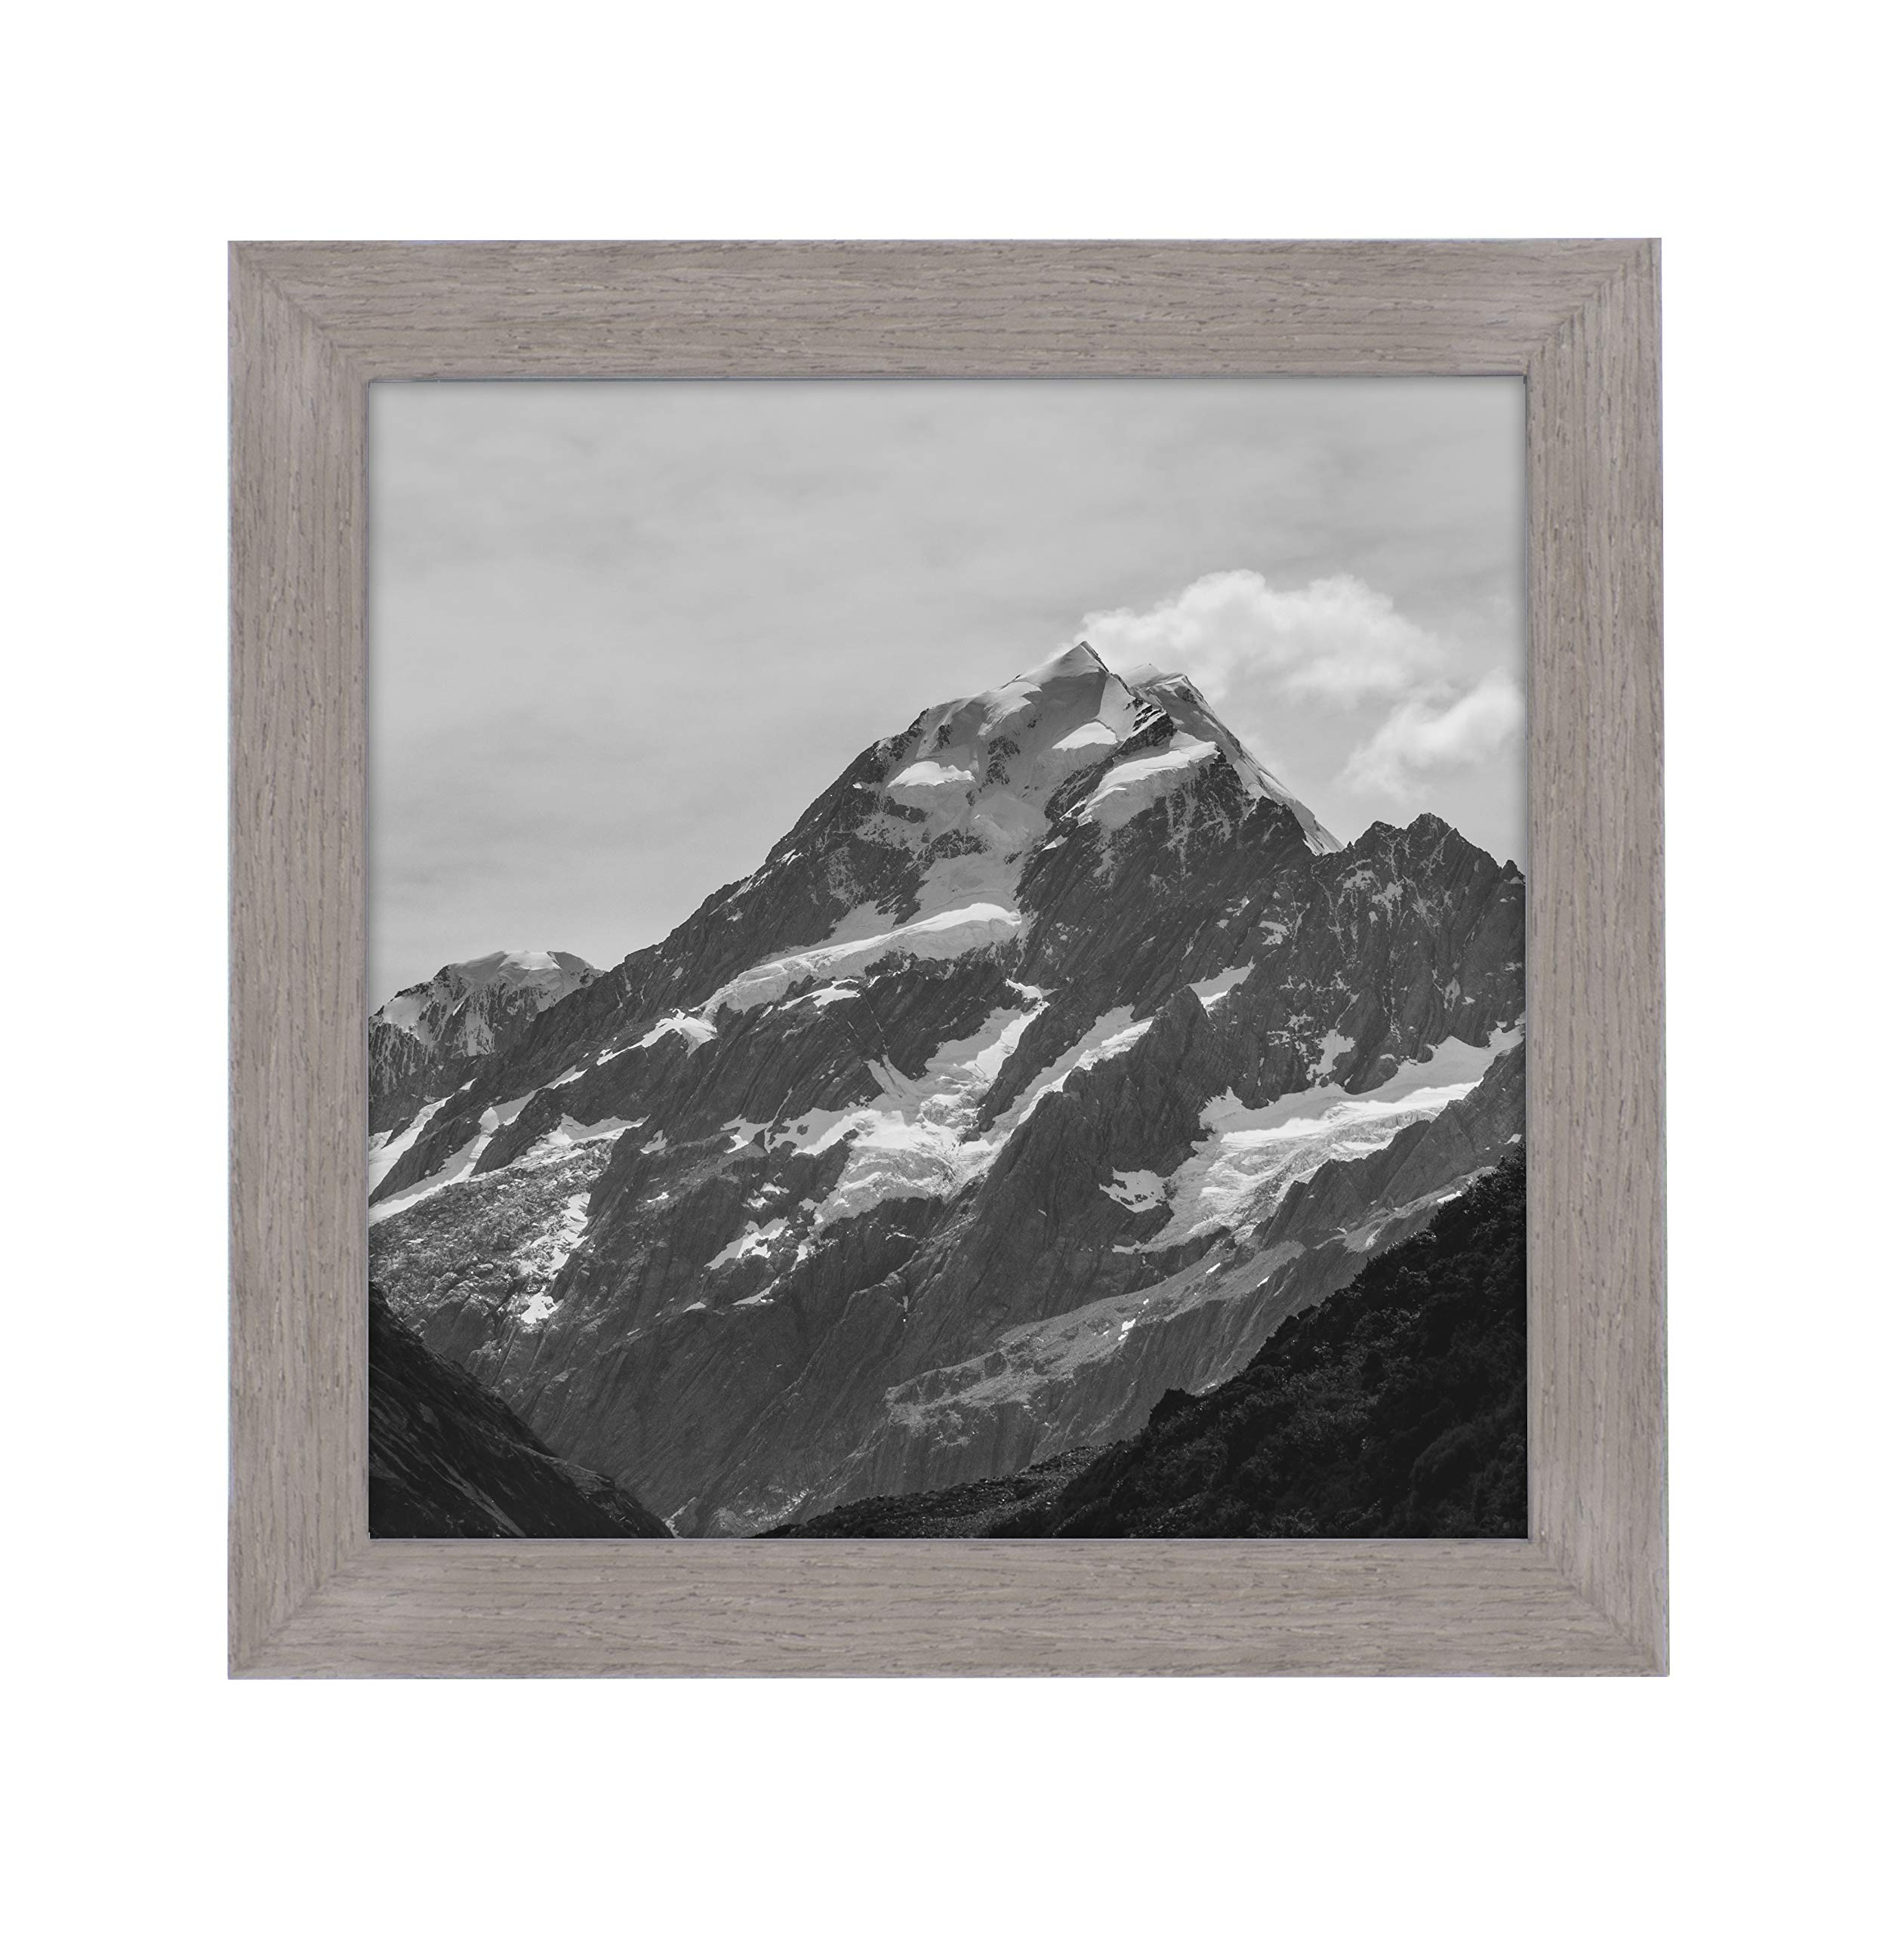 EcoHome 8x8 Picture Frame Square - Walnut Wood, or 4x4 Matted Frame, Modern Square Shape, Photos